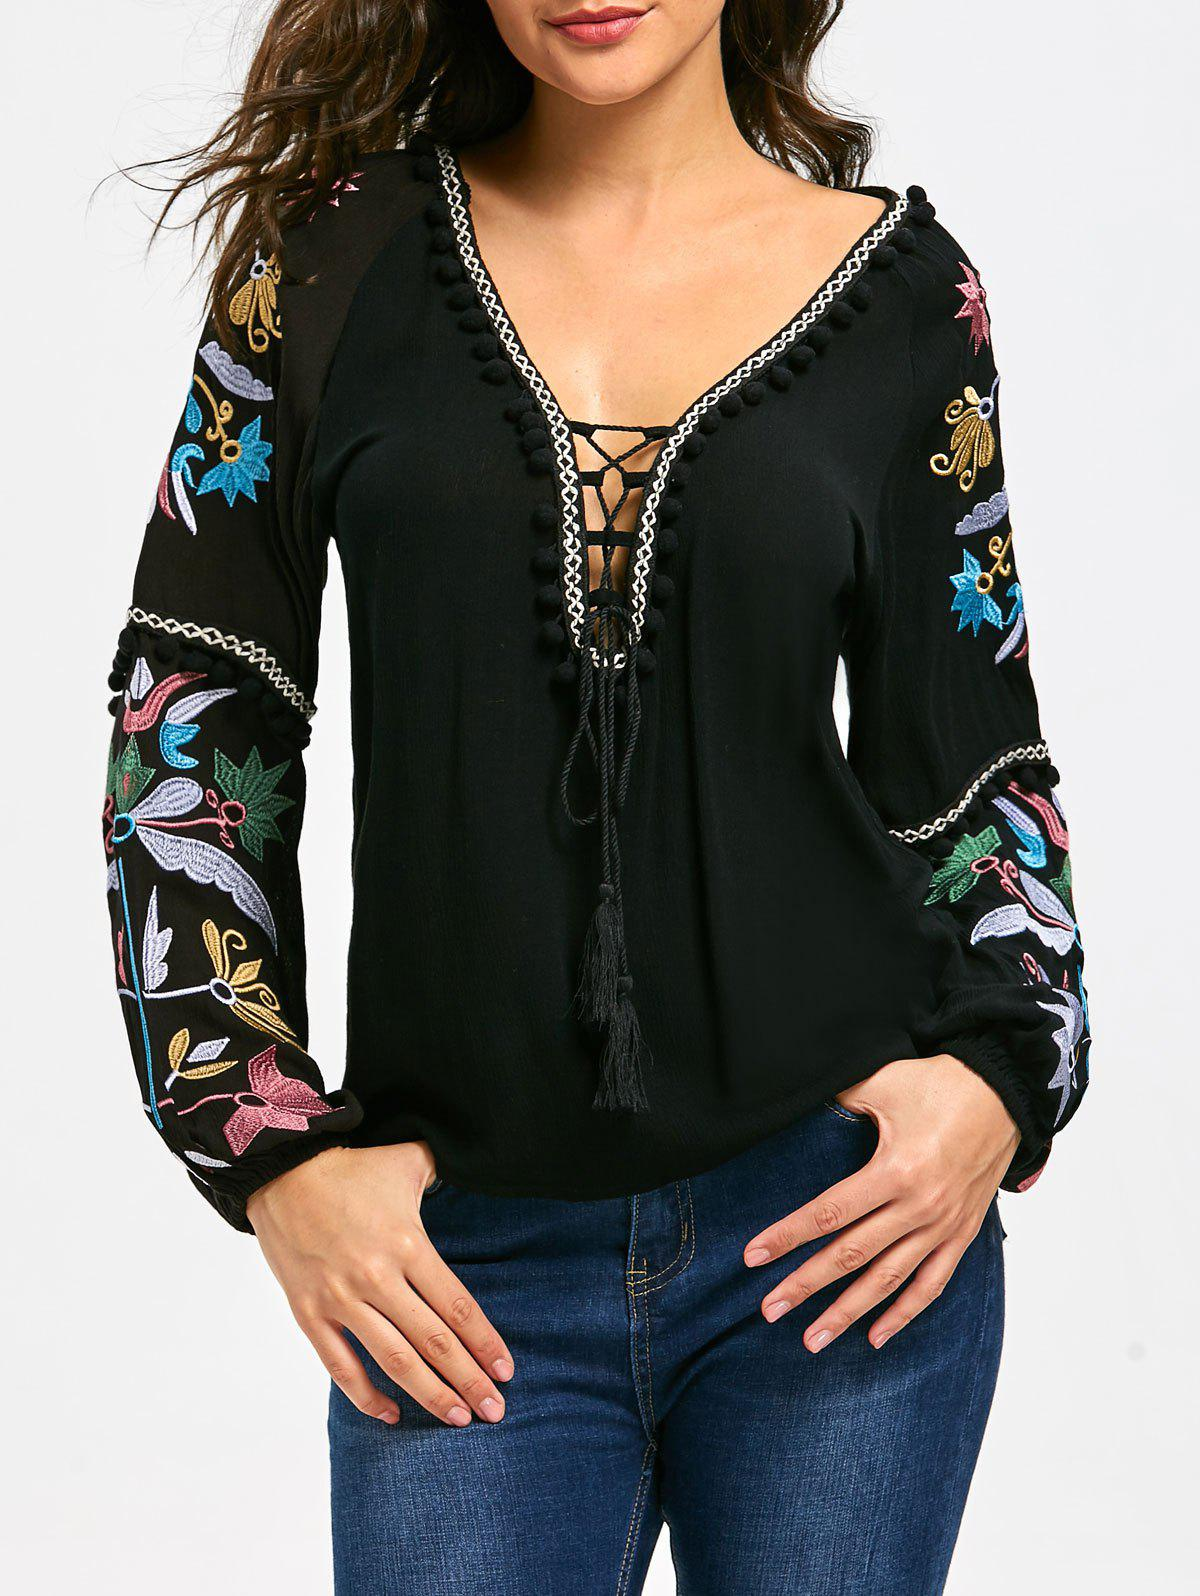 Lace Up Balls Trim Floral Embroidered T-shirtWOMEN<br><br>Size: L; Color: BLACK; Material: Cotton,Polyester; Shirt Length: Regular; Sleeve Length: Full; Collar: Plunging Neck; Style: Casual; Embellishment: Criss-Cross,Embroidery; Pattern Type: Floral; Season: Fall,Spring; Weight: 0.4000kg; Package Contents: 1 x T-shirt;